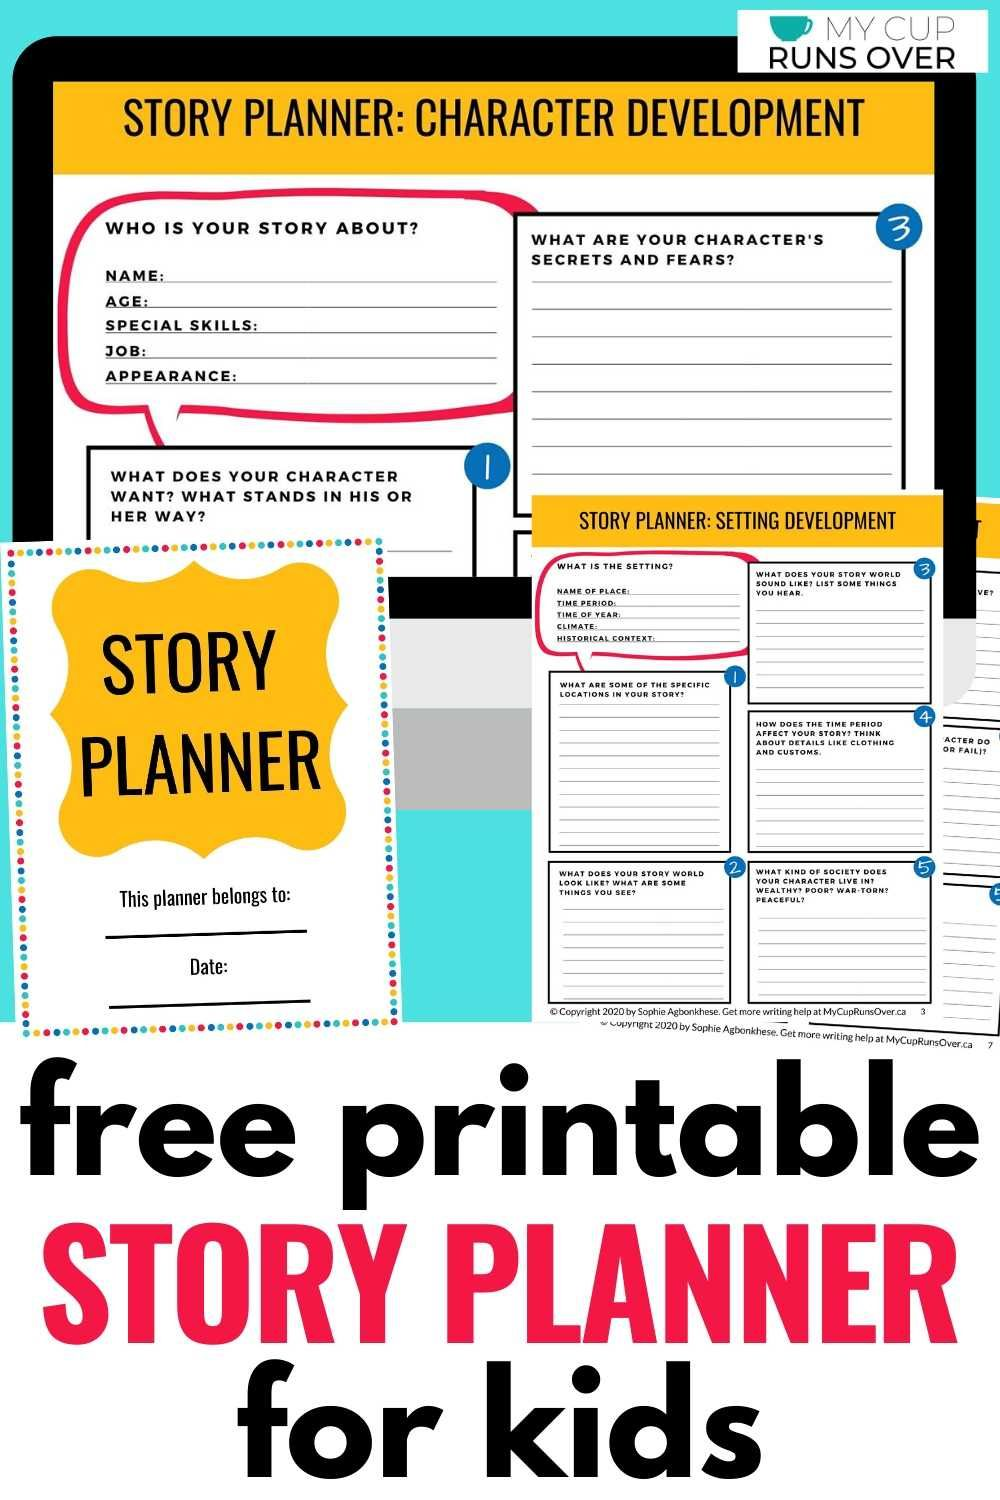 How To Plan A Short Story Free Story Planner Template For Kids Writing Lessons Creative Writing Activities Kids Planner